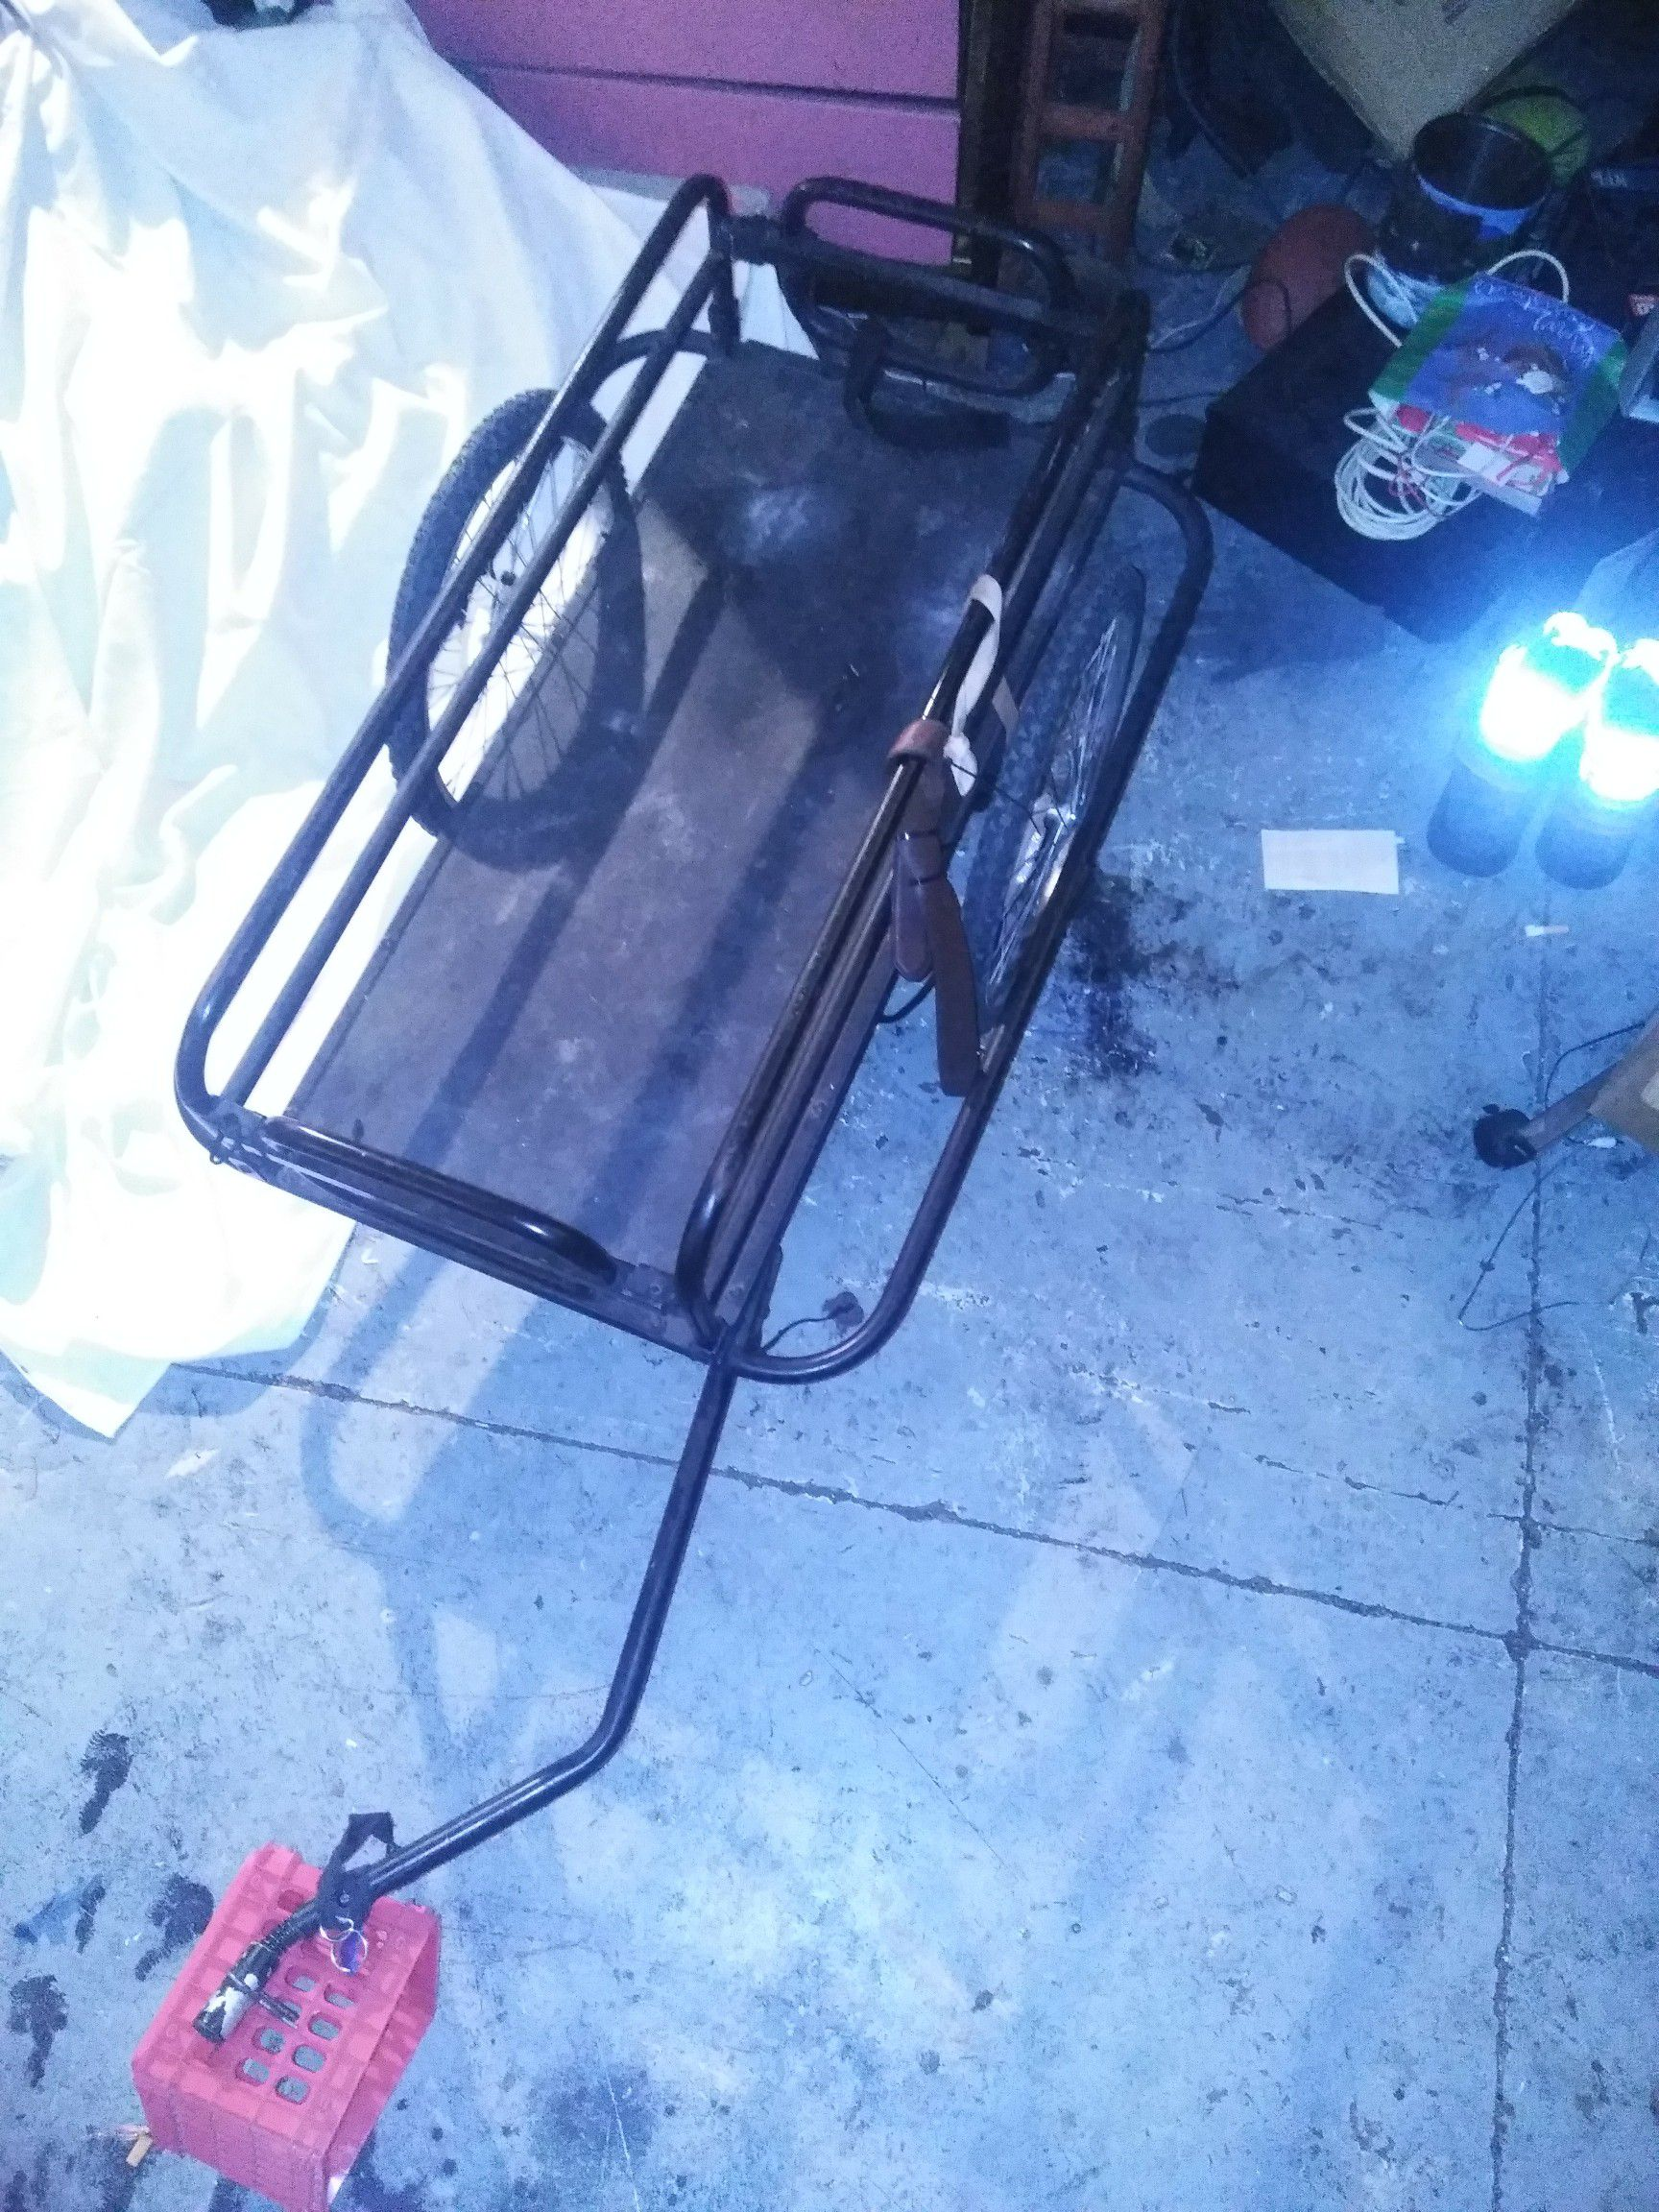 Action Bike Trailer durable and built to carry everything. Make a reasonable offer! please look into the value of the trailer before your offer